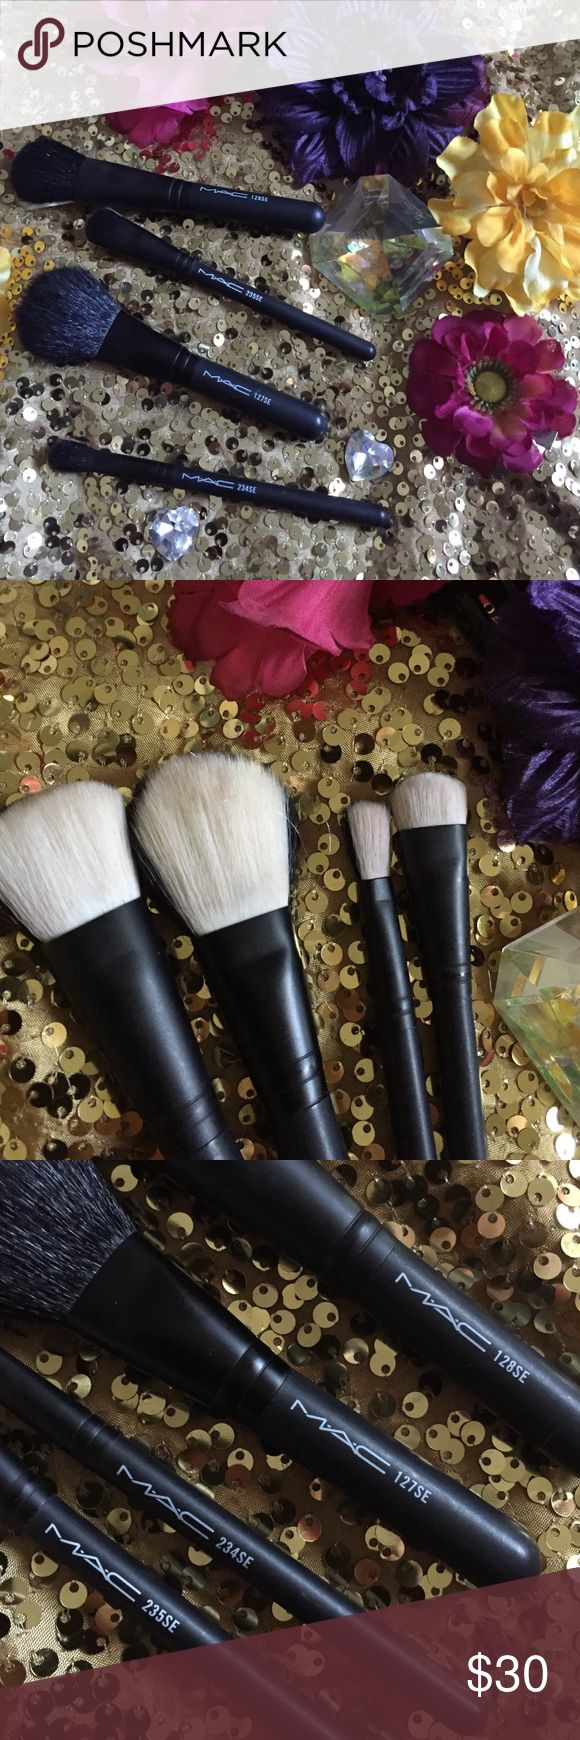 Mac Brushes set💞 Authentic 💕... Slightly used... Haven't